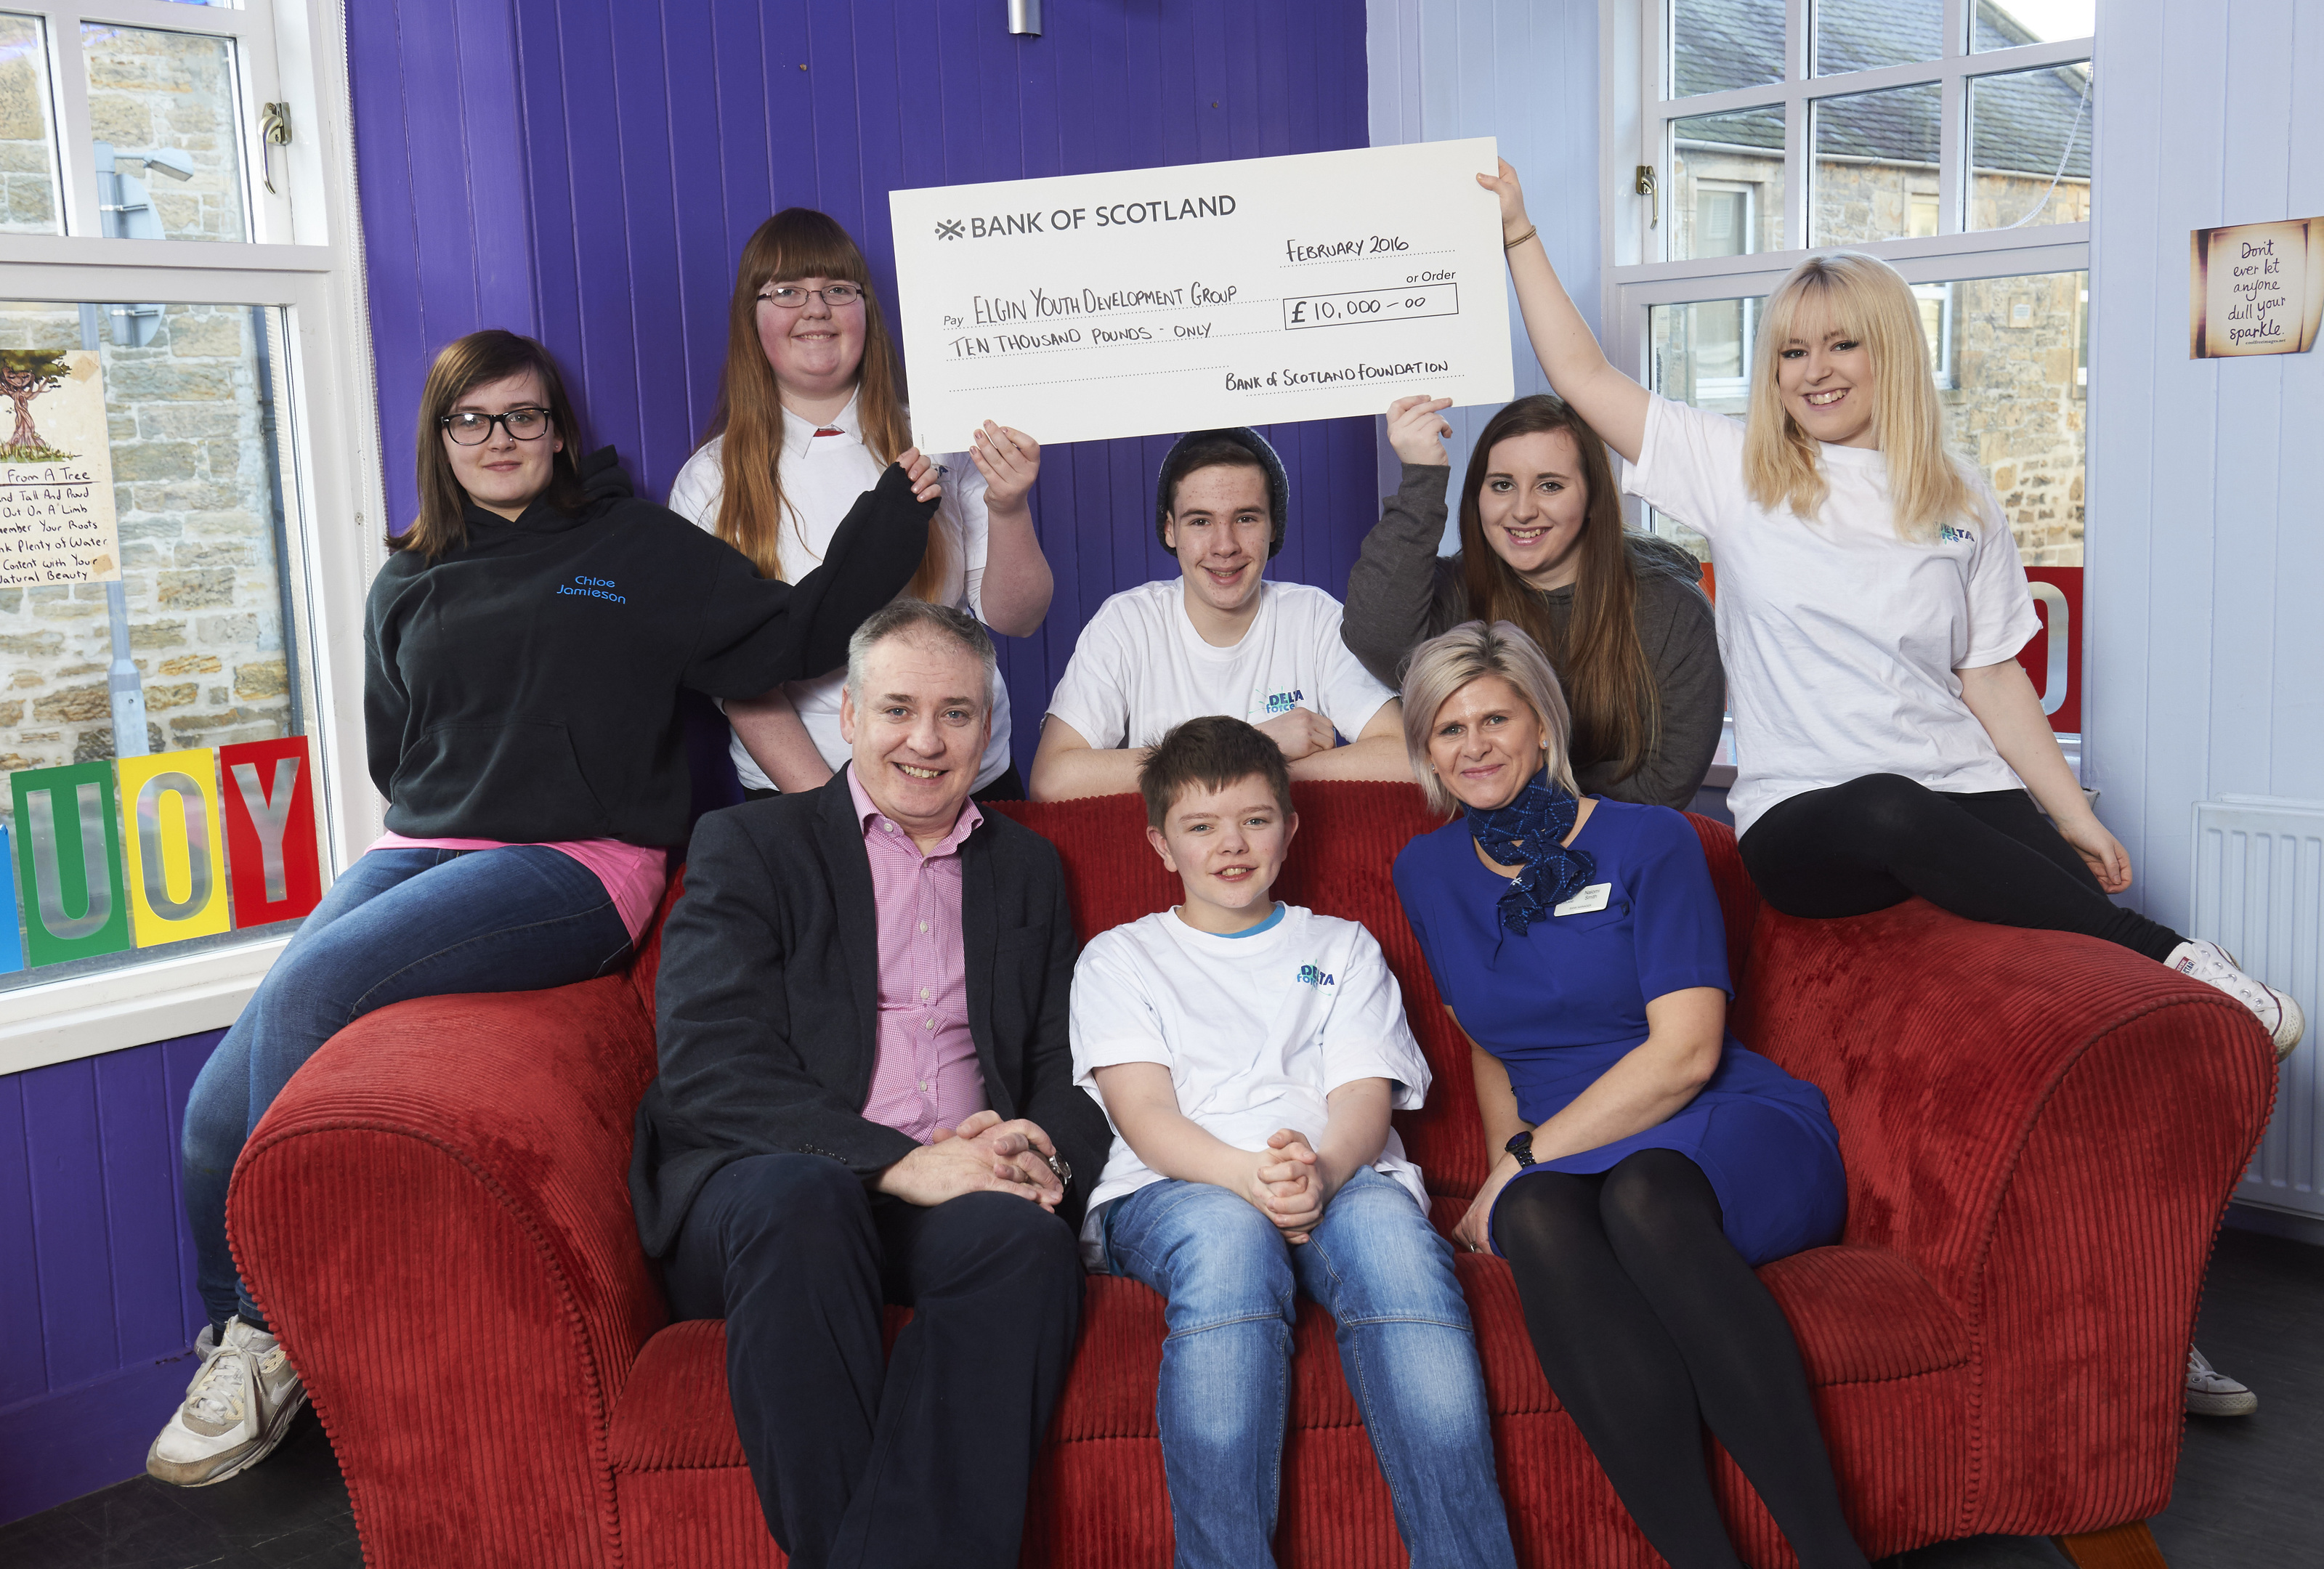 Elgin Youth Cafe Cheque Presentation, Names LtoR 1&2 (Back row) Chloe Jamieson, Emily Burns, Liam Hughes, Sarah Fiske (Youth Worker) and Adele Starr.         (Front row) Richard Lochead MSP, Aiden Henderson and Naomi Smith (Bank of Scotland)